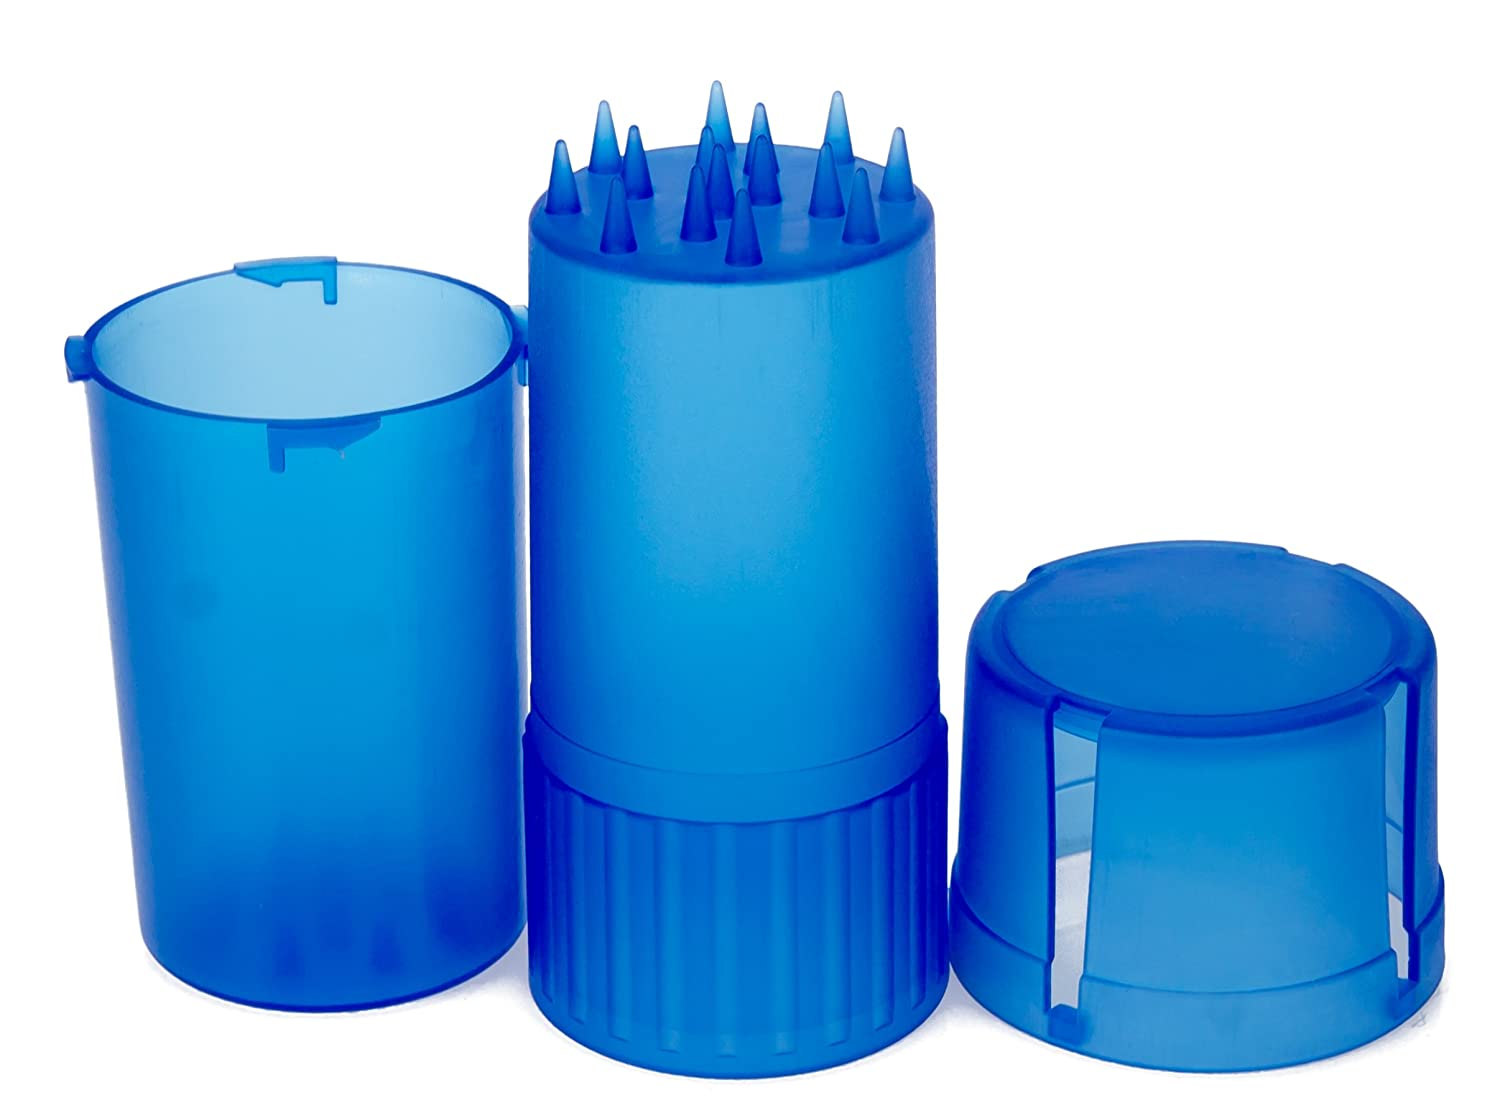 Formax420 2 In 1 Plastic Grinder with Storage Container 1 PCS Send Random Color Formax-0187